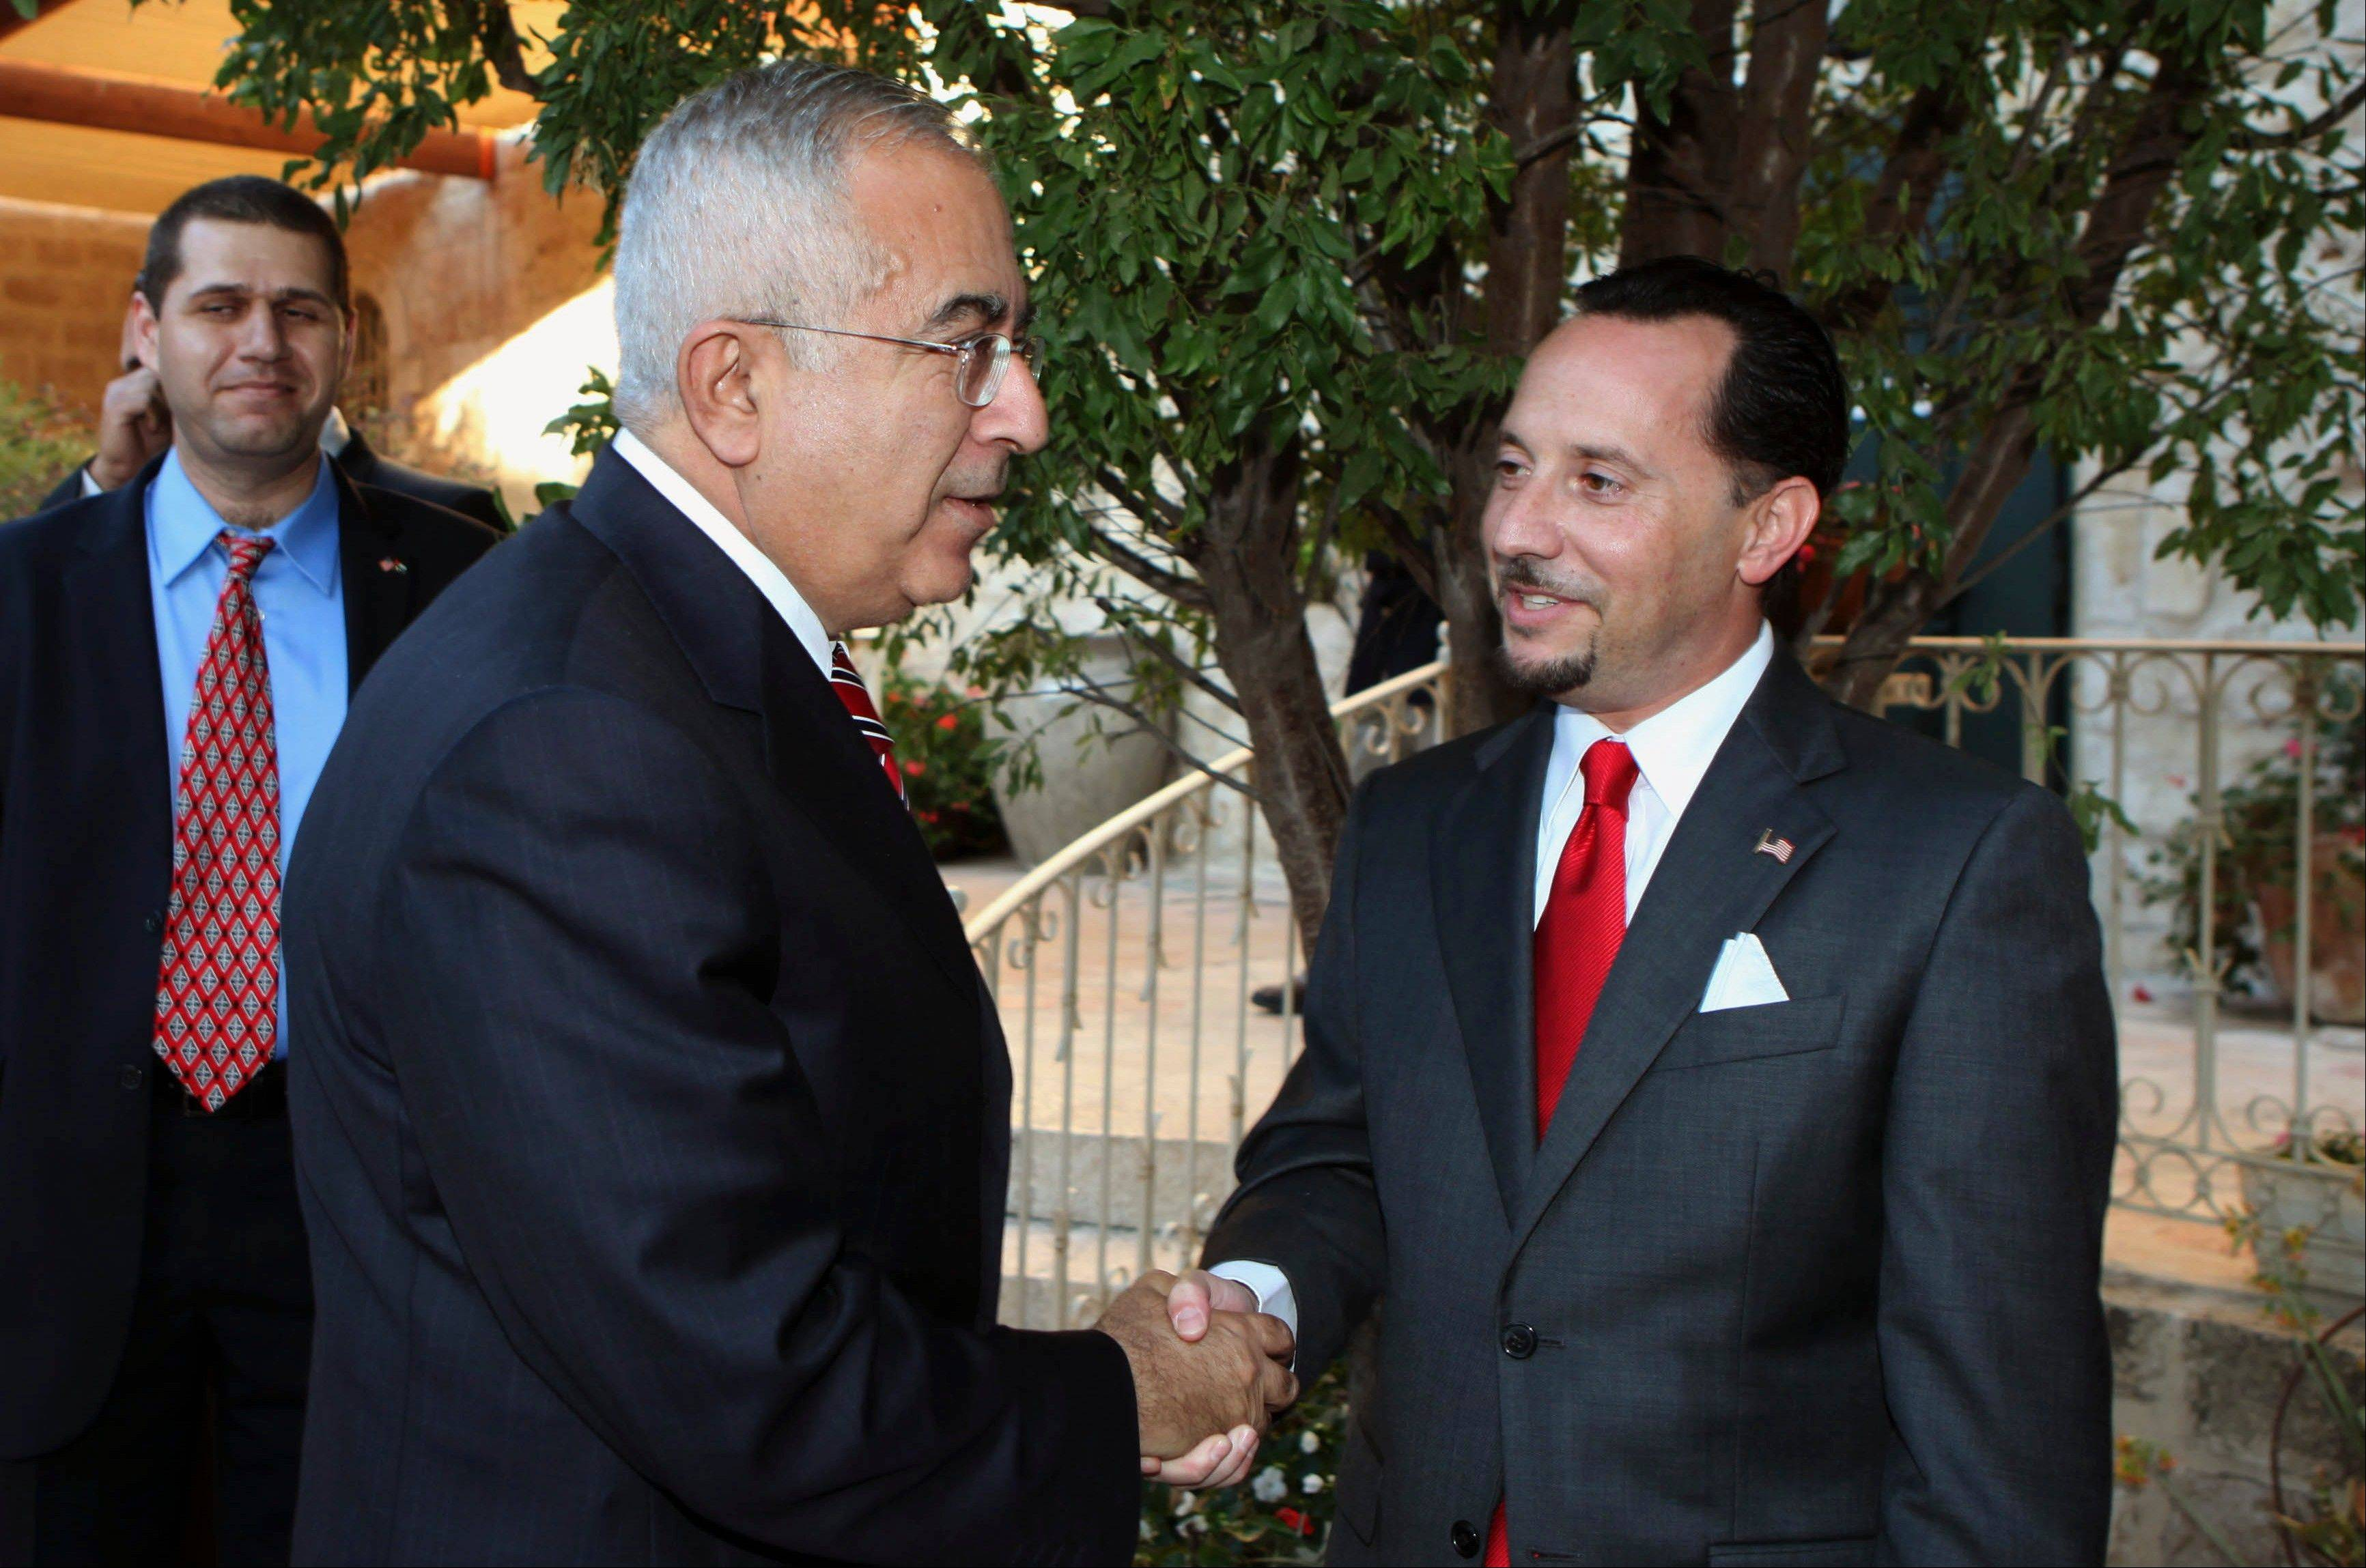 In this Wednesday, June 30, 2010 file photo, U.S. Consul General of Jerusalem Daniel Rubinstein, right, shakes hands with Palestinian Prime Minister Salam Fayyad, during a reception ahead of July 4 U.S. Independence Day celebrations at the American Consulate in Jerusalem. Senior Palestinian official Saeb Erekat said the U.S. Consul General in Jerusalem, Daniel Rubinstein told him Friday that the U.S. will take �punitive measures� to stop financial support if the Palestinians proceed with seeking U.N. recognition of statehood in September.